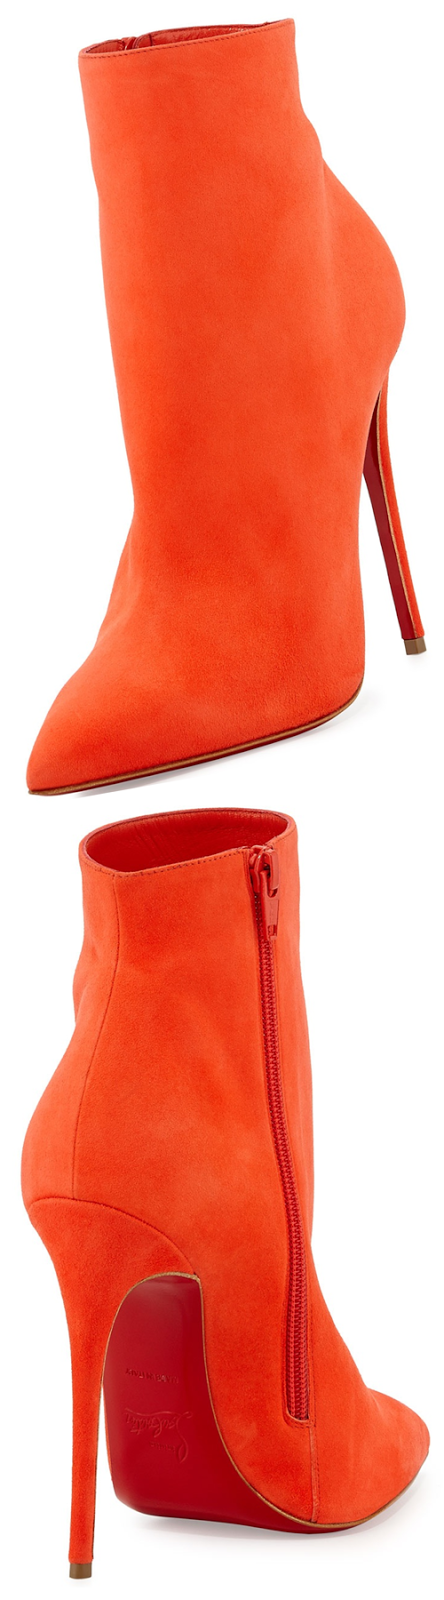 303eeb15441 LOOKandLOVEwithLOLO Christian Louboutin So Kate Booty Red Sole Ankle Boot